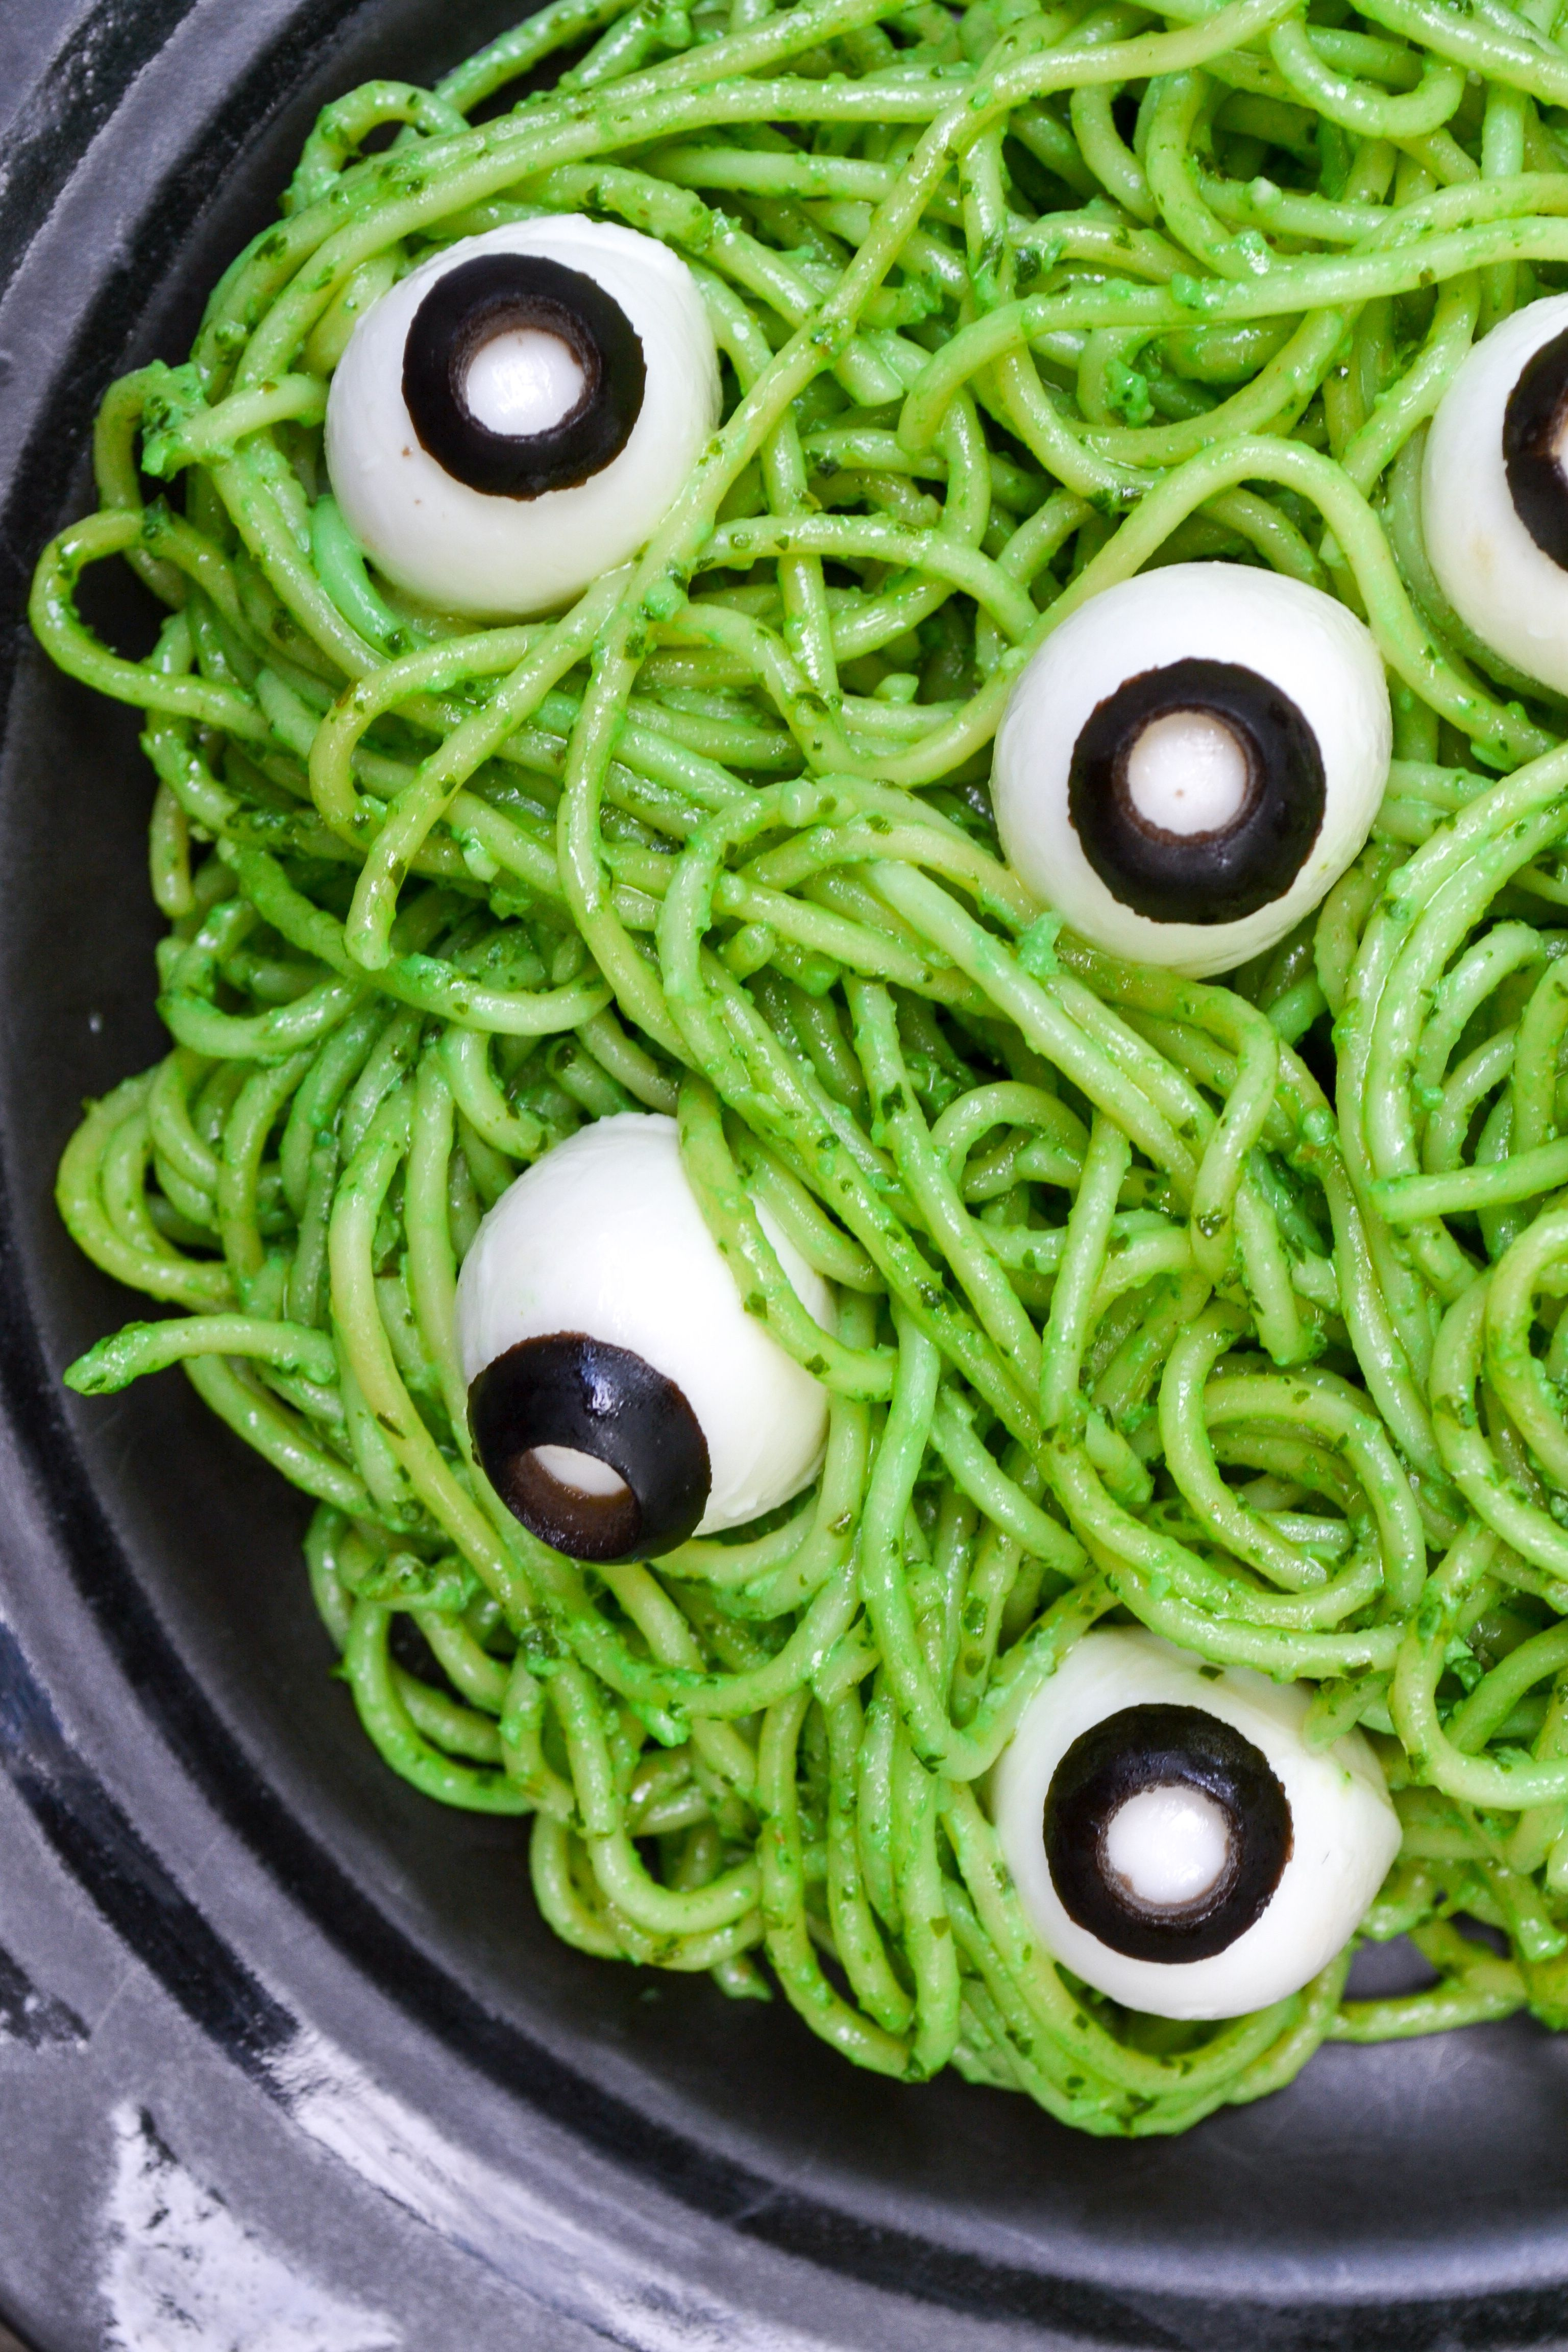 bright green spaghetti noodles covered in veggie pesto and topped with mozzarella eyeballs on a black plate